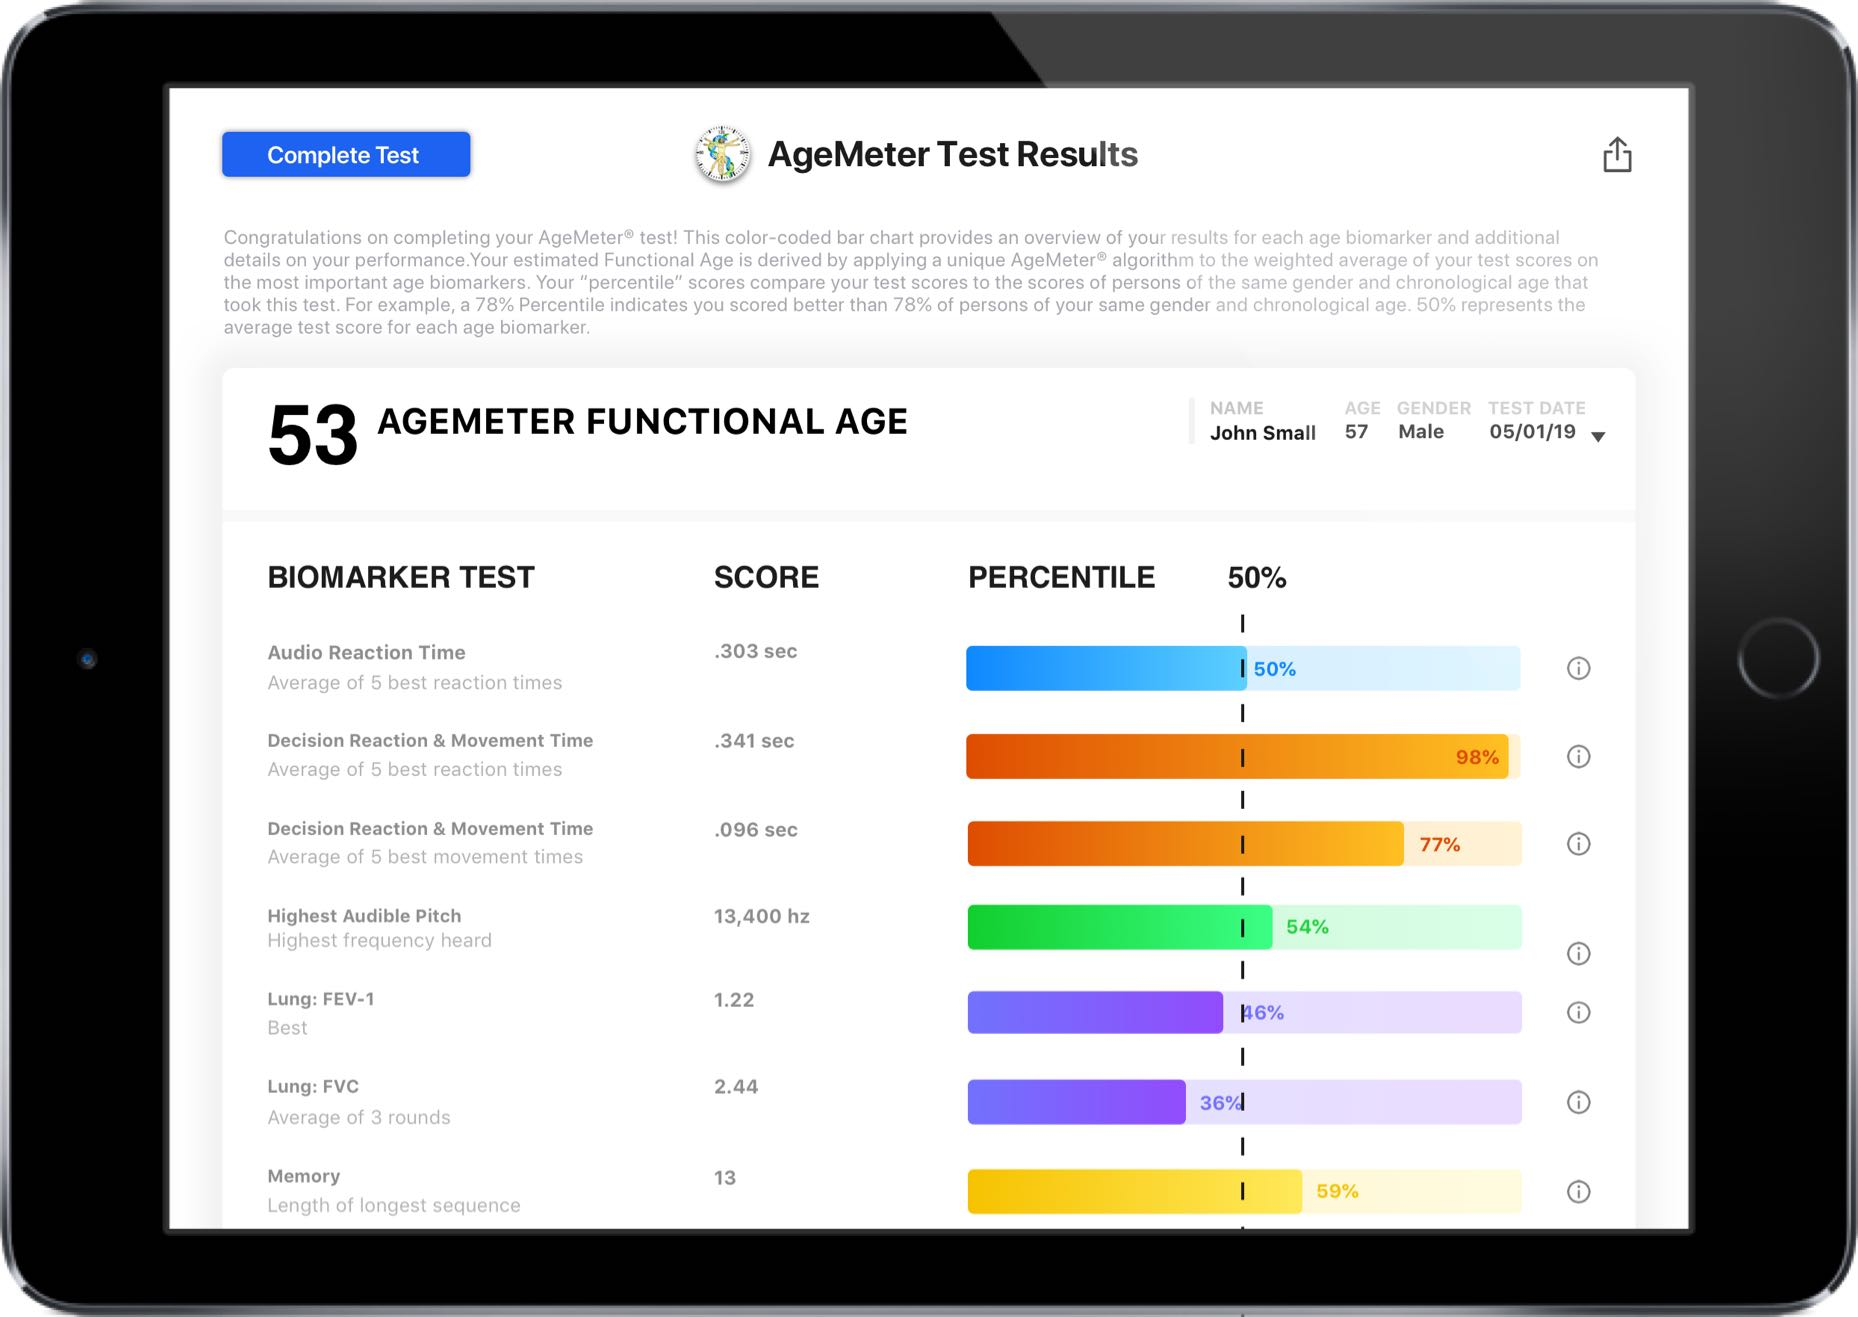 Detailed Results - Every test delivers a detailed report breaking down each biomarker result which can be saved or printed in a tap.